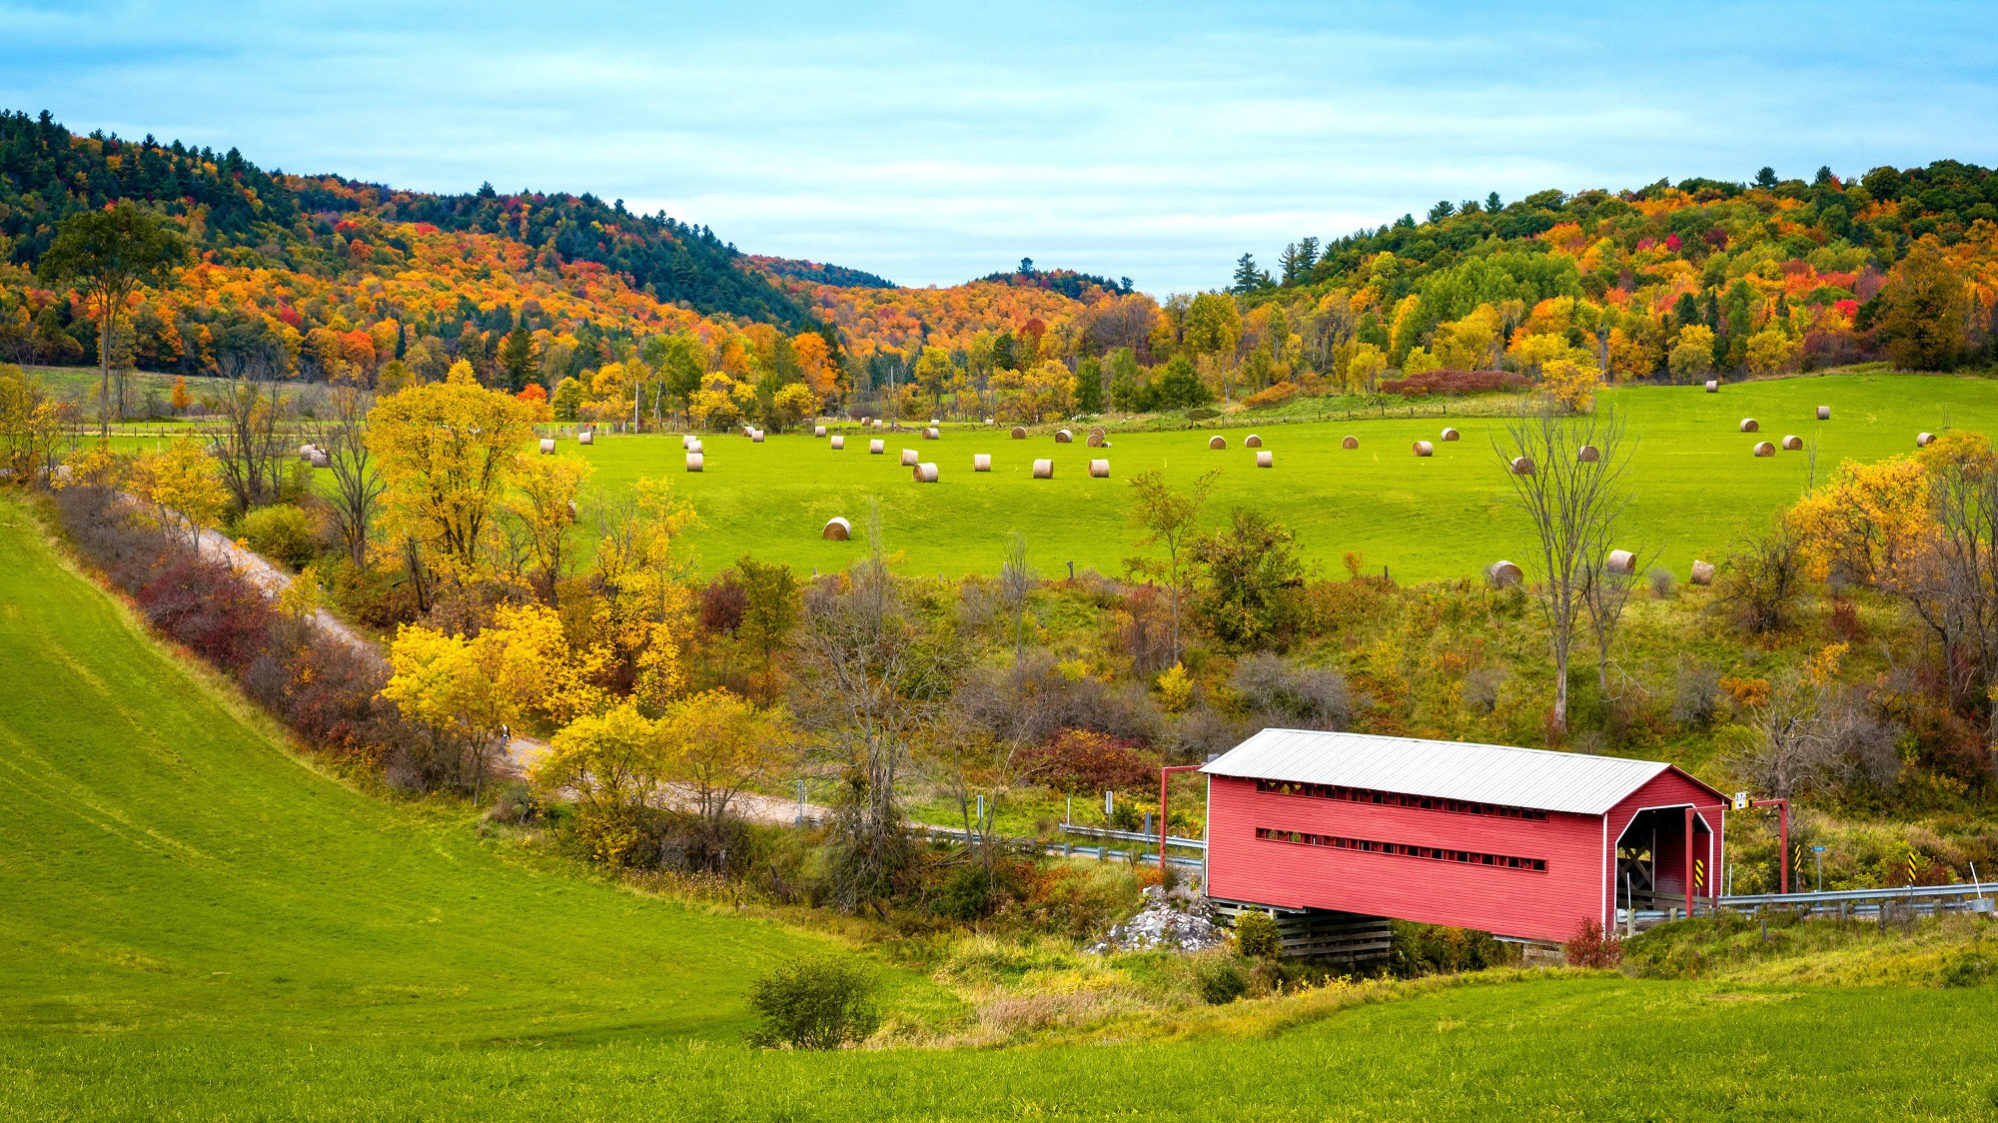 View of Meech Creek Valley in the fall. Scene of a covered bridge and haybales, with ochre- and orange-coloured trees in the background.